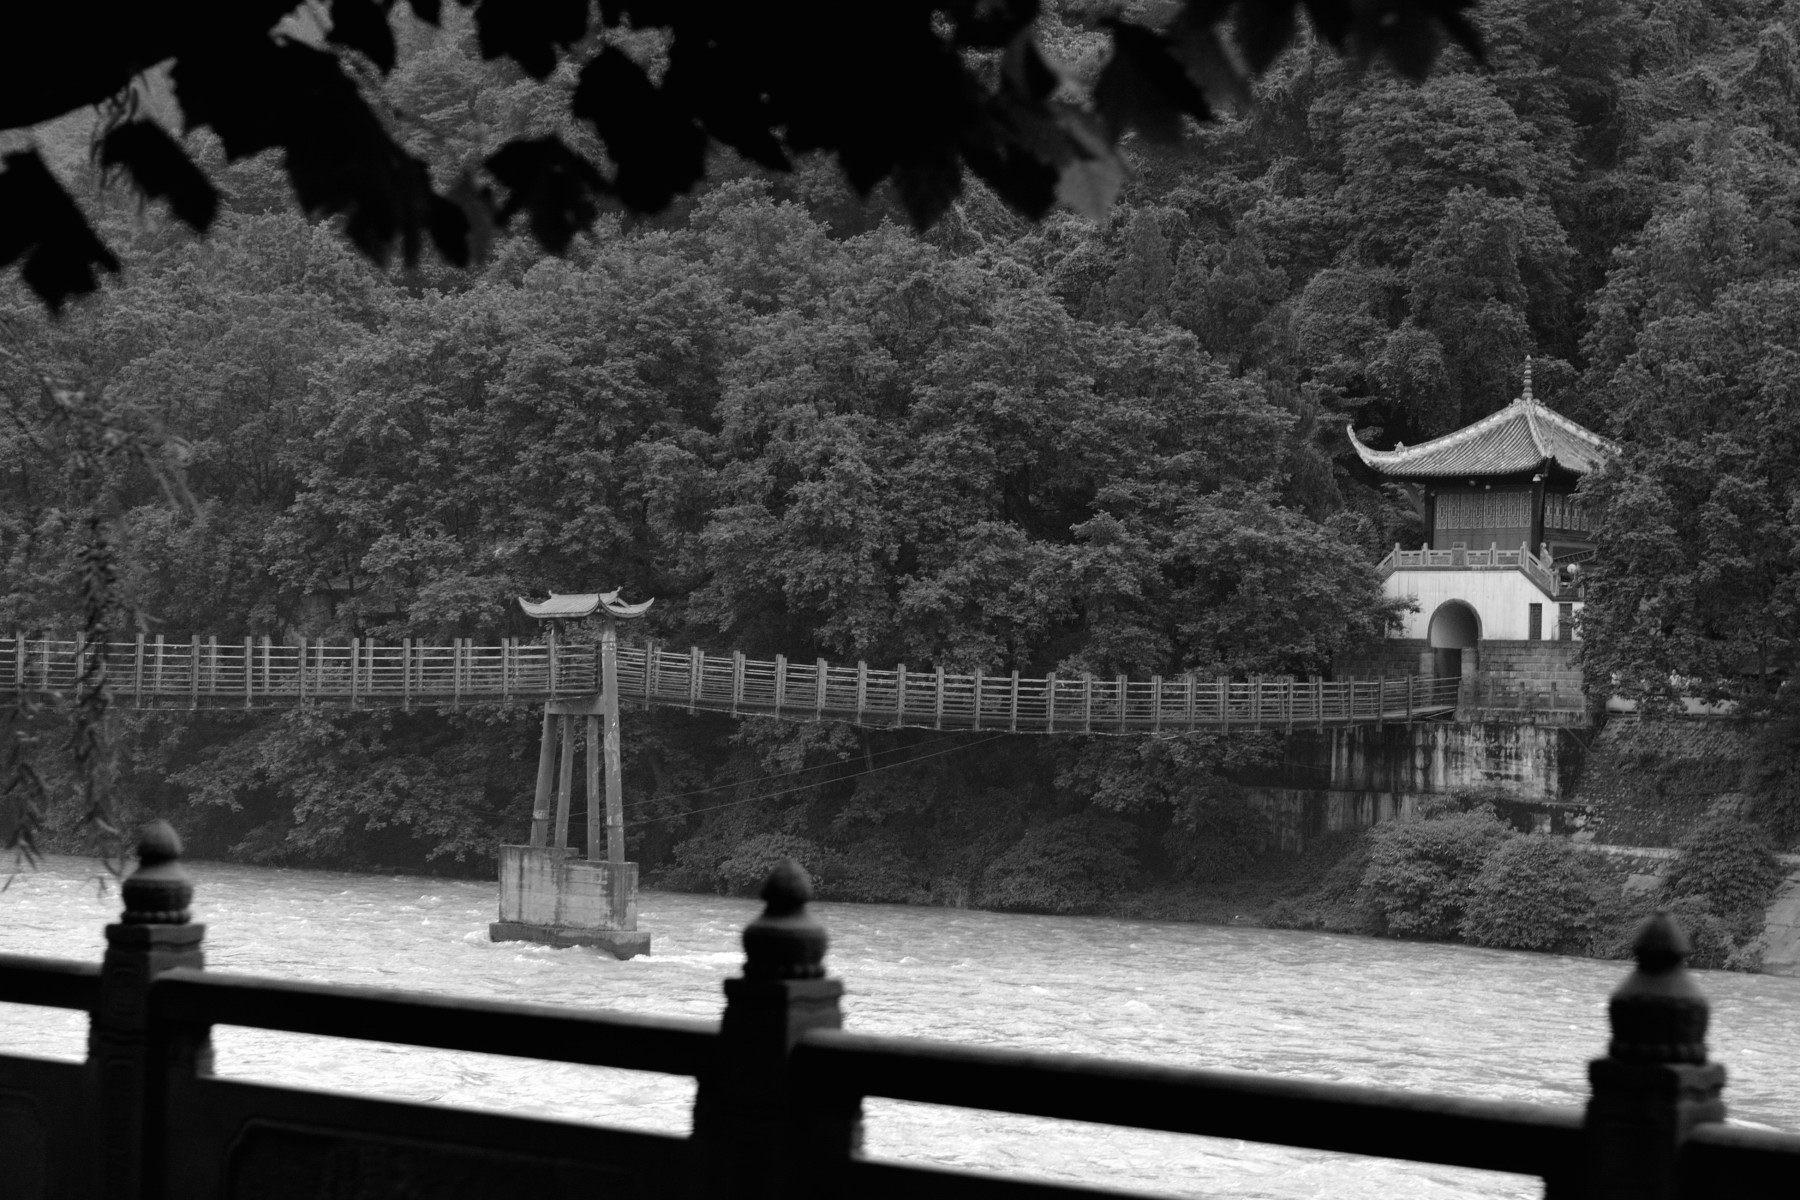 The Dujiangyan Irrigation System is a UNESCO World Heritage Site.